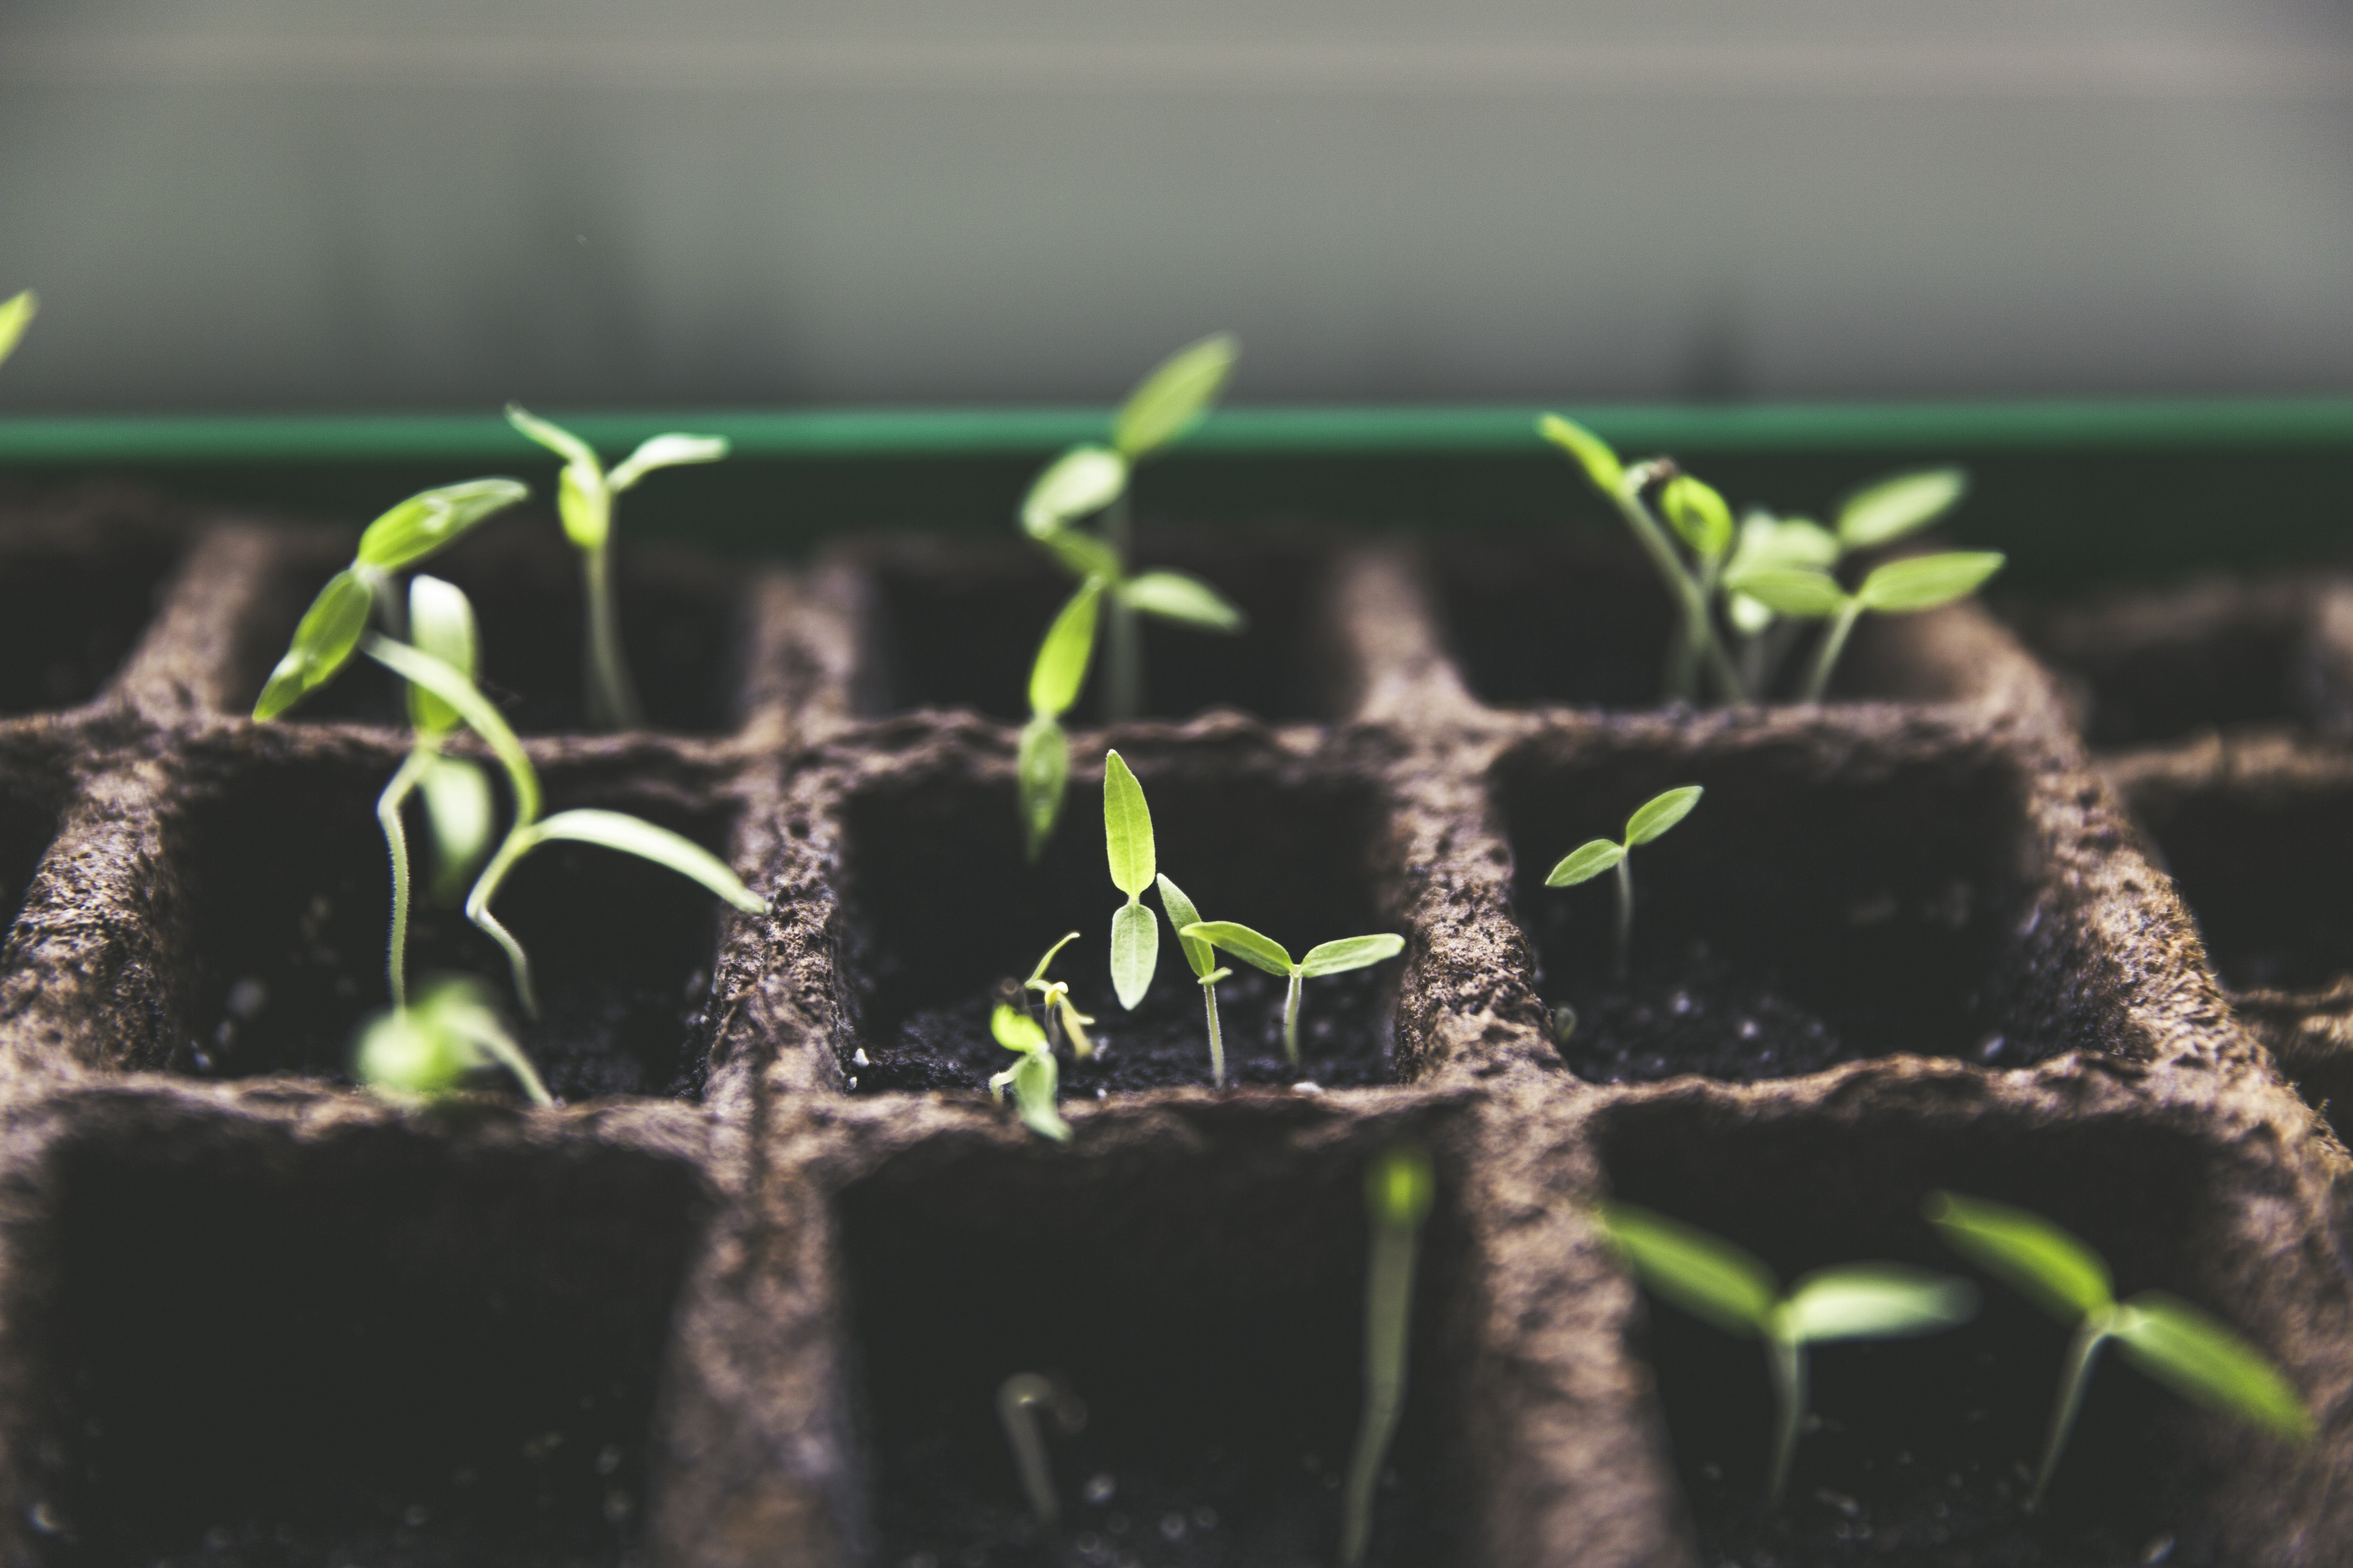 Green sprouts grow in planters in a greenhouse.